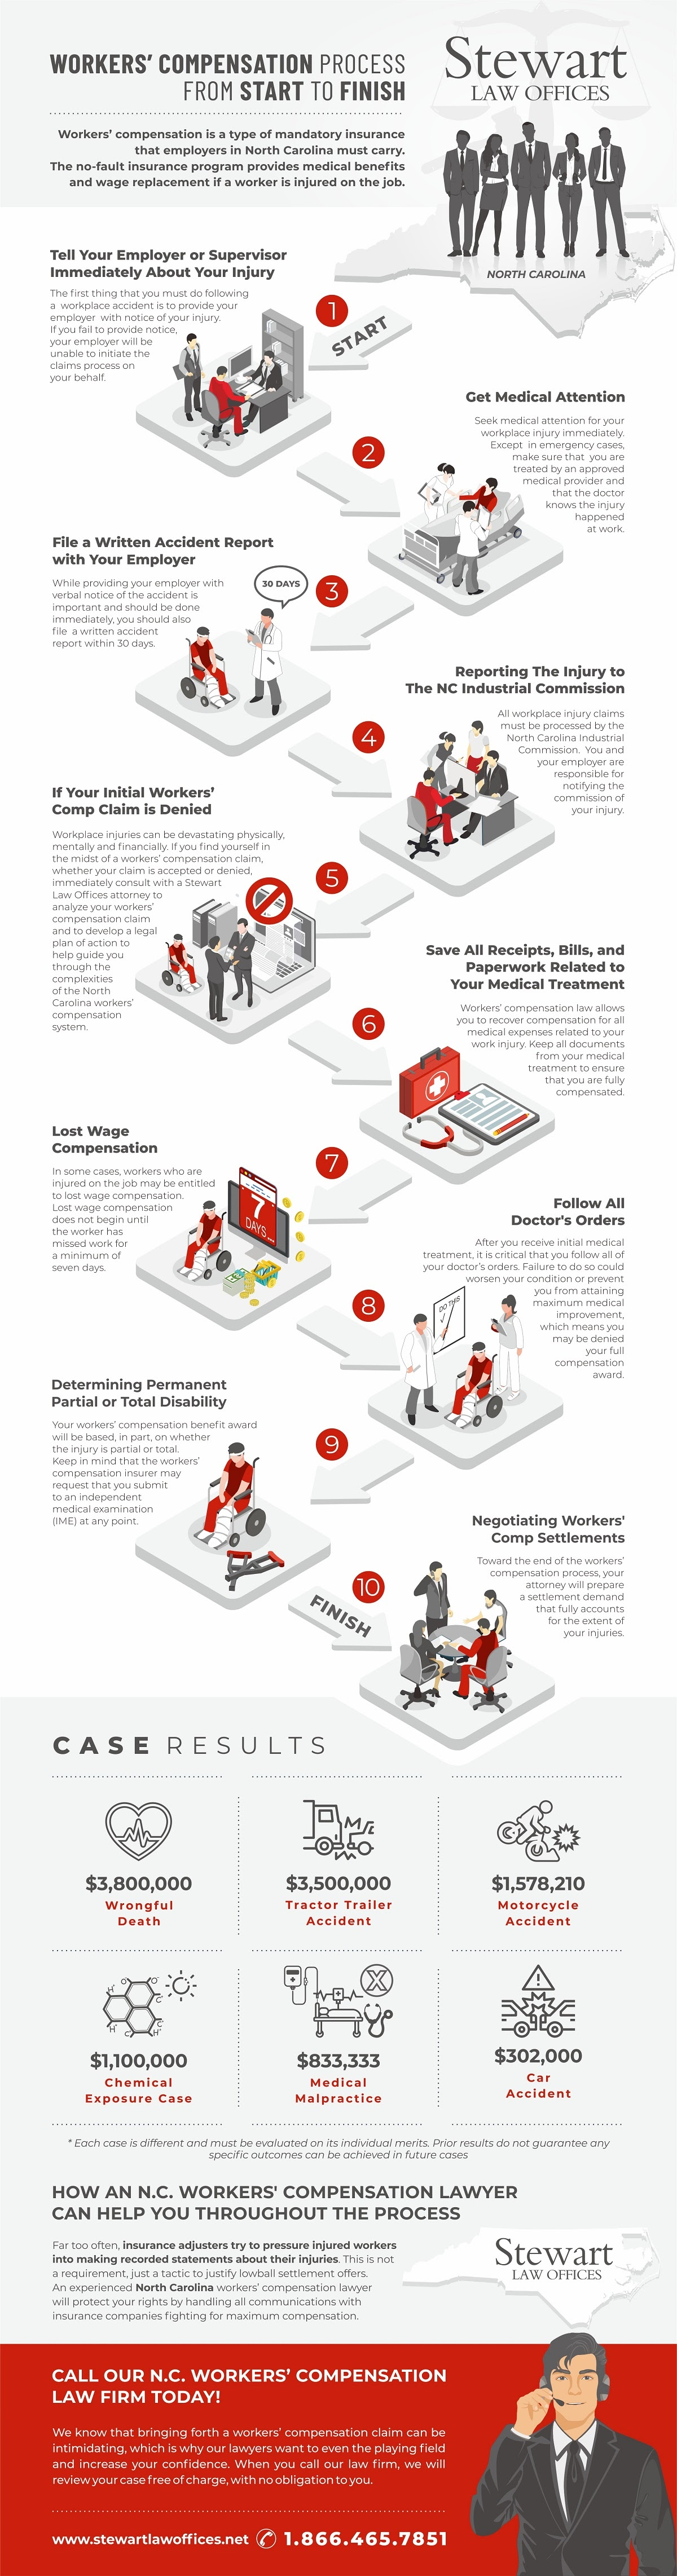 workers-comp-claim-process-infographic